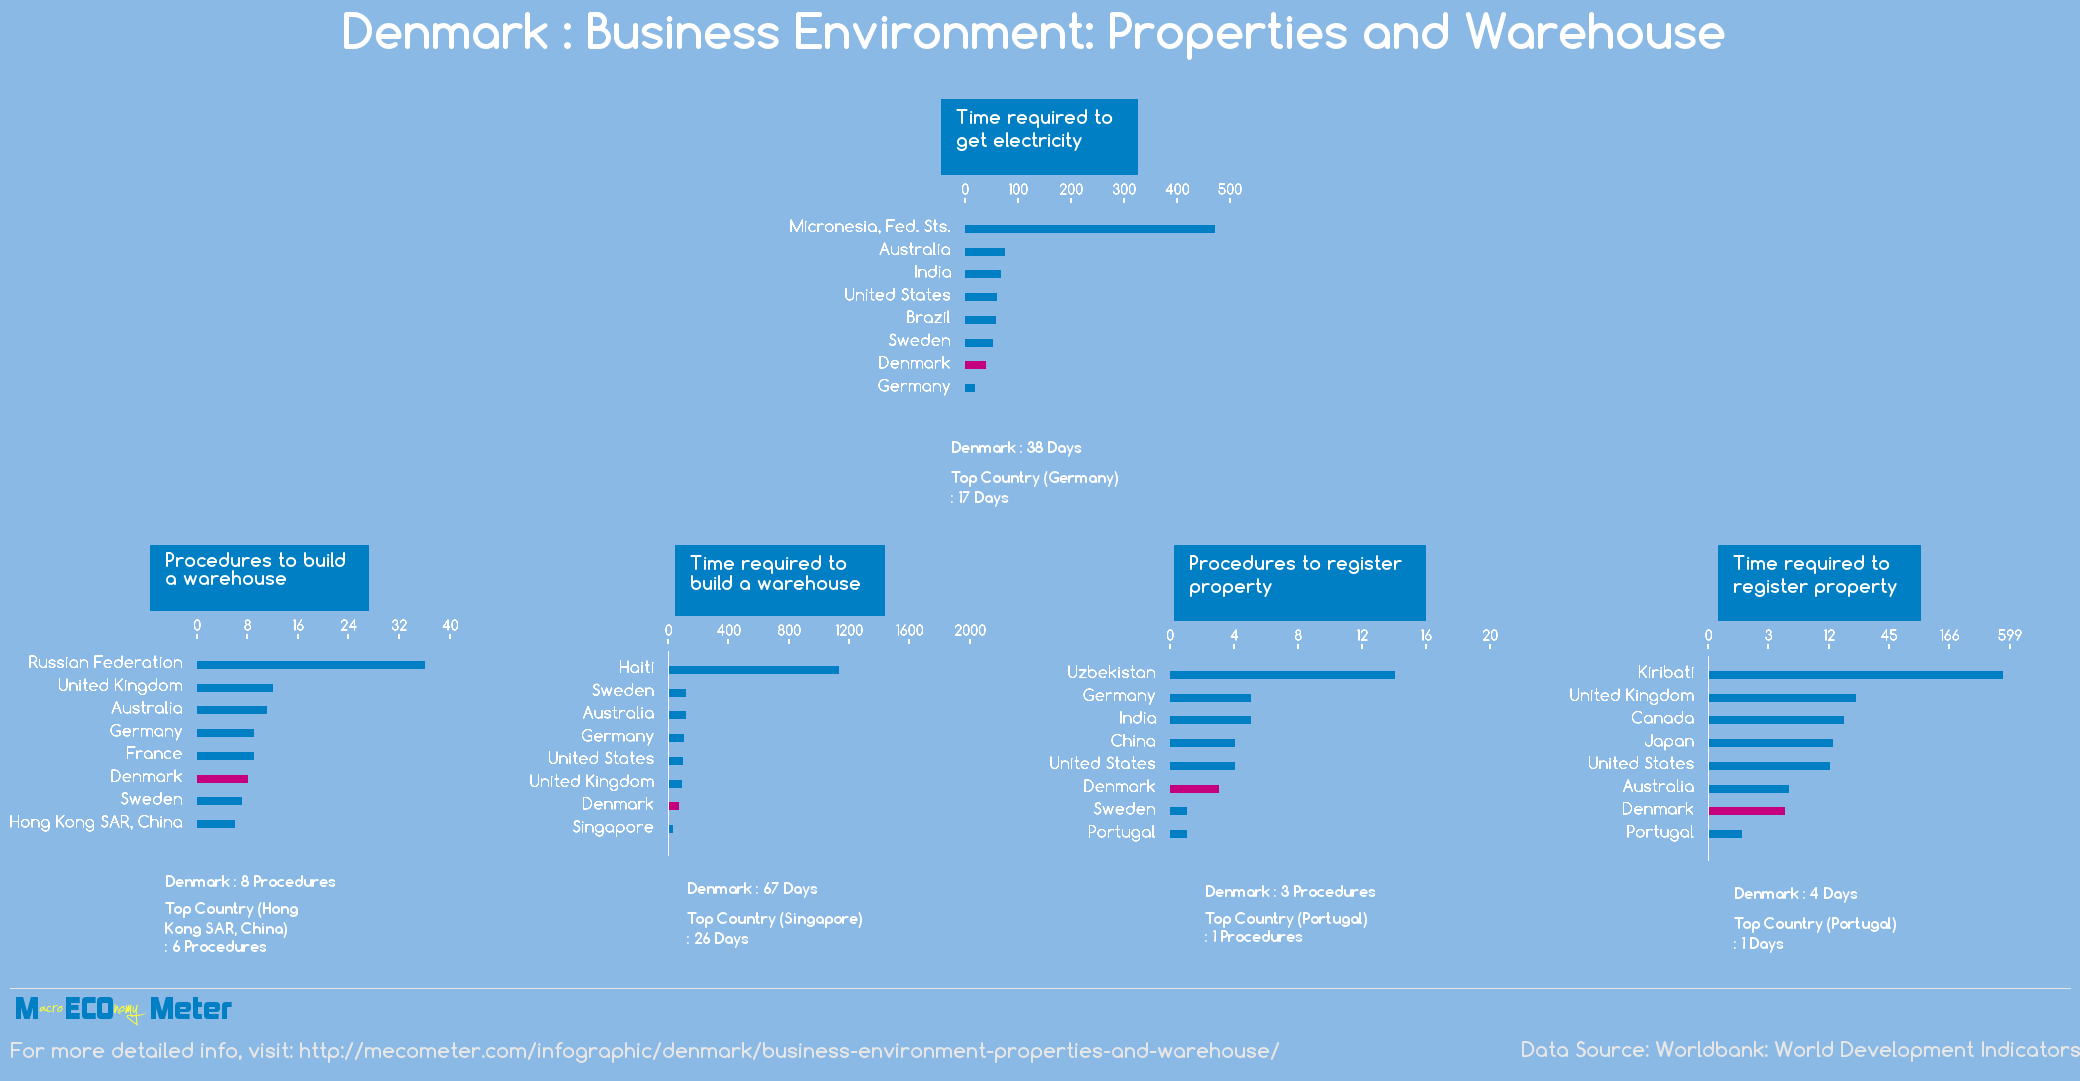 Denmark : Business Environment: Properties and Warehouse